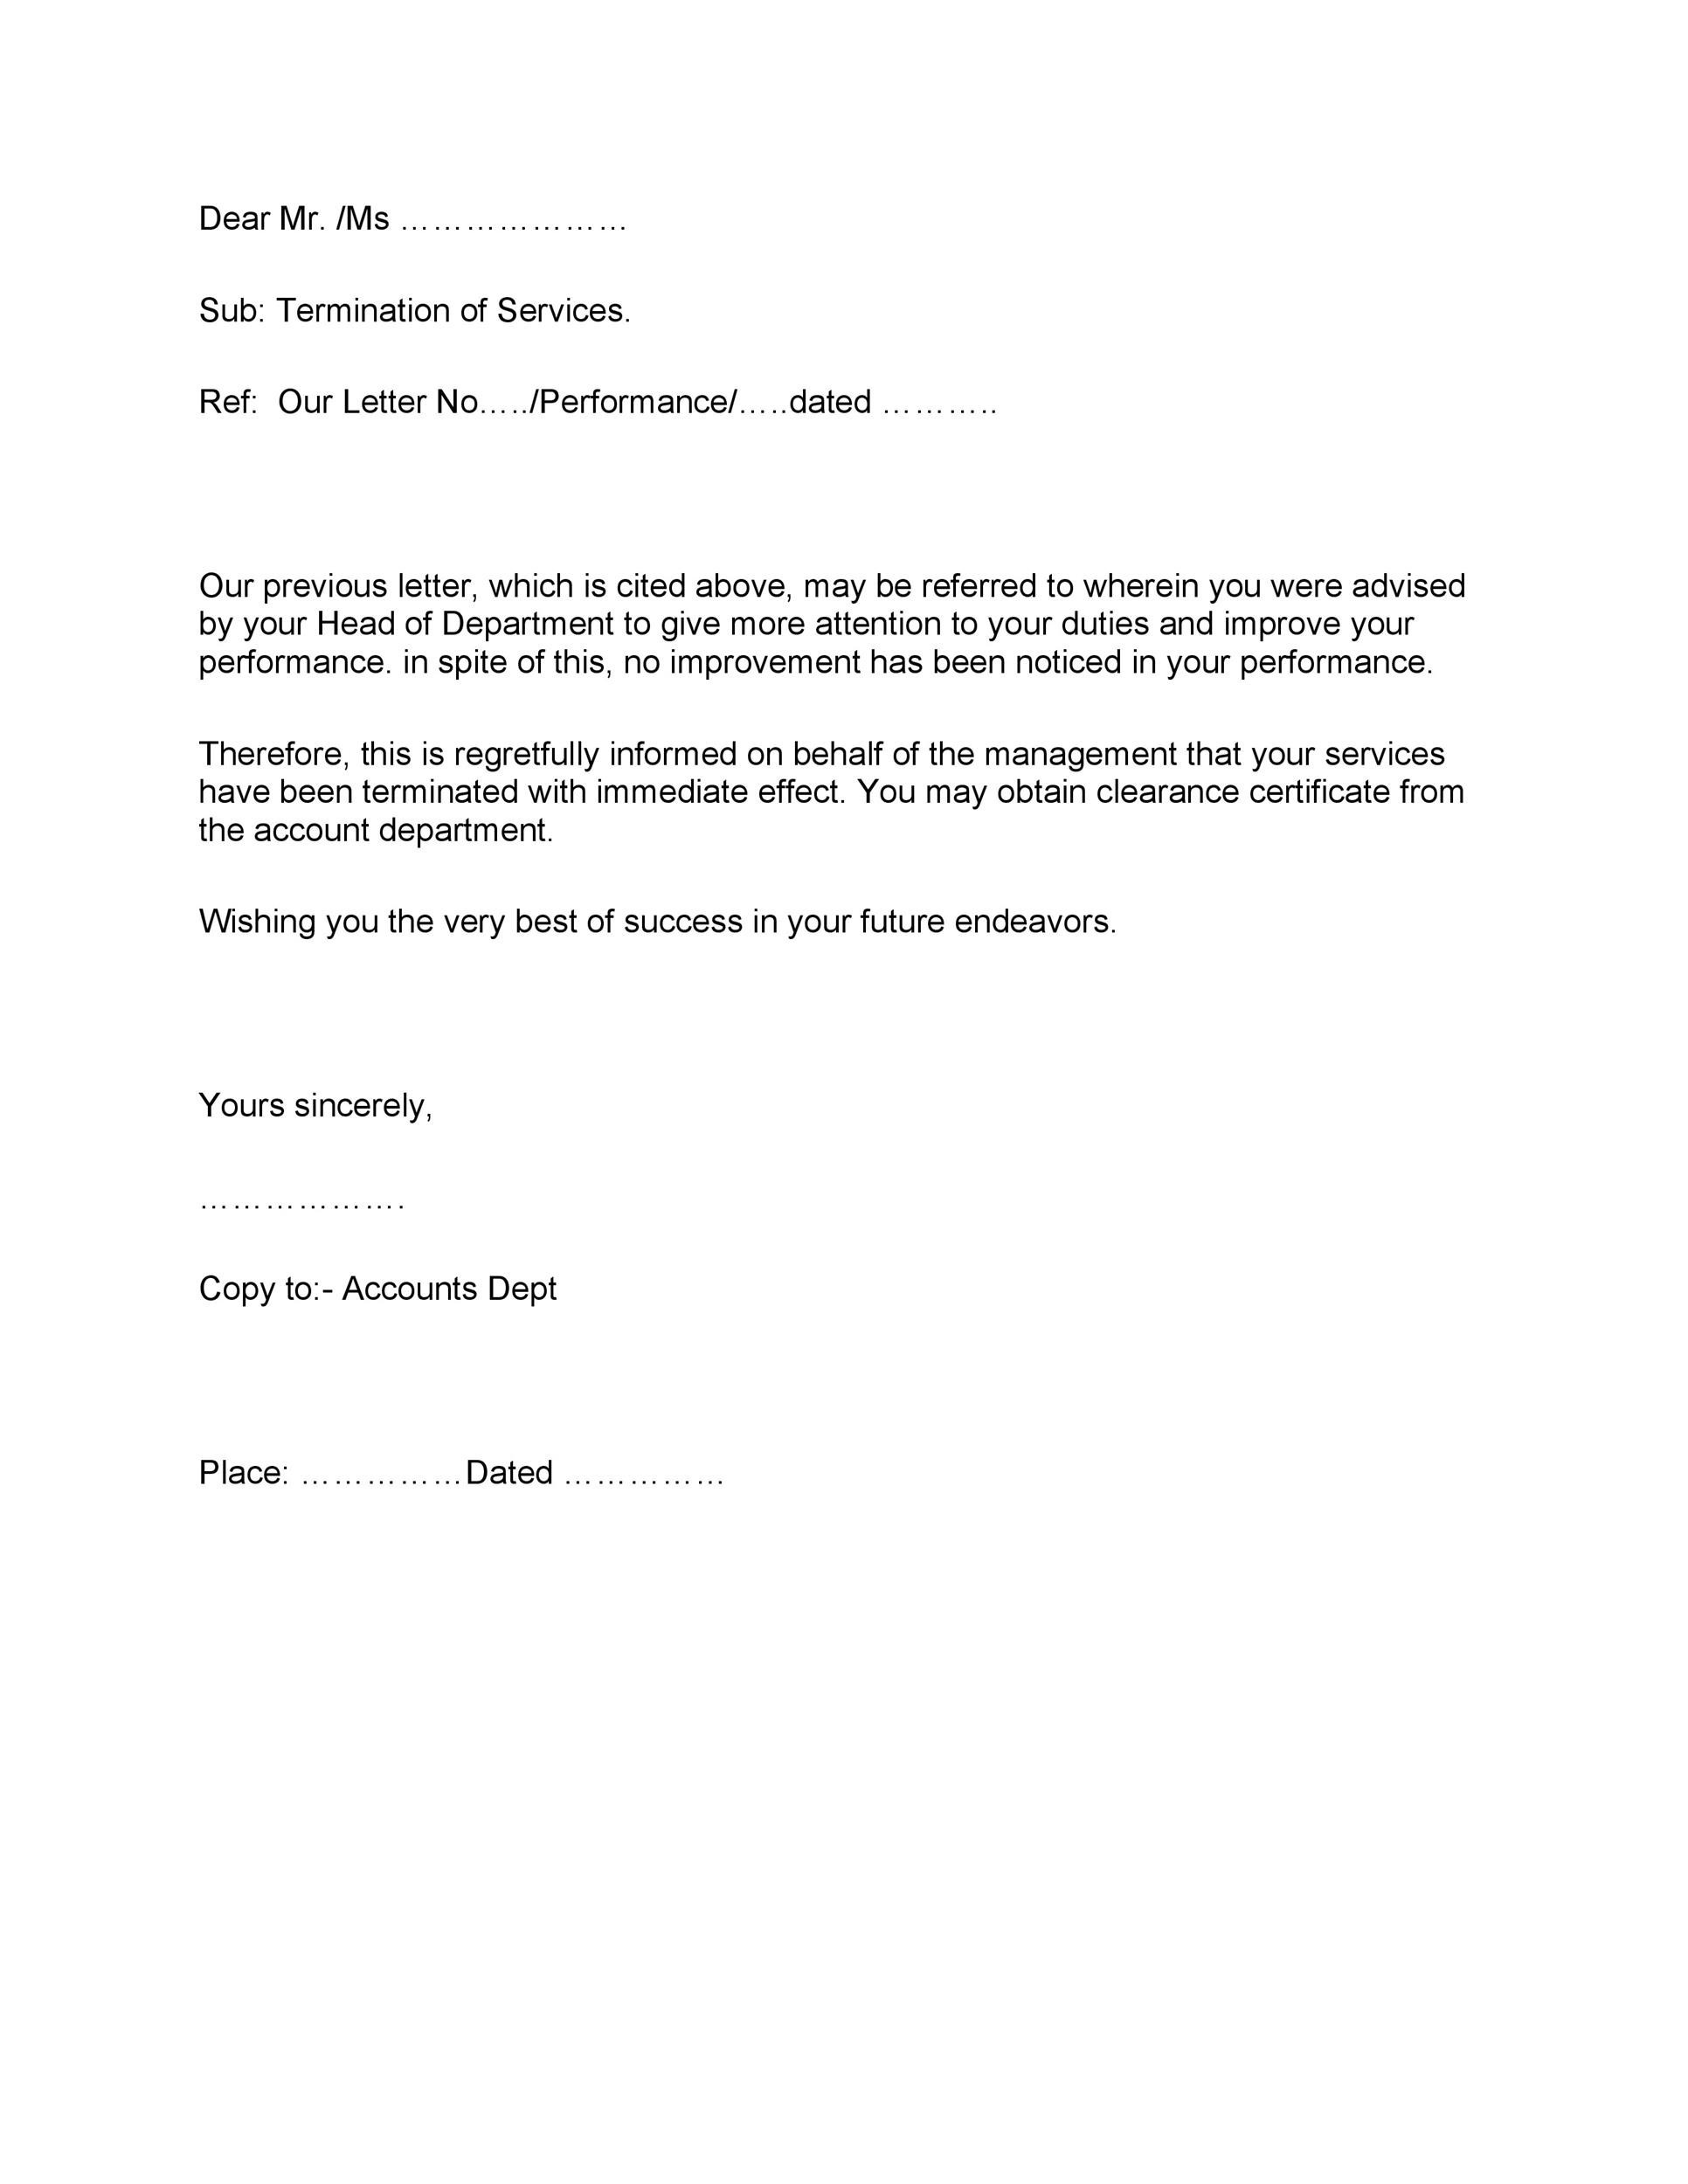 Job Termination Appeal Letter Template Word Doc. Termination